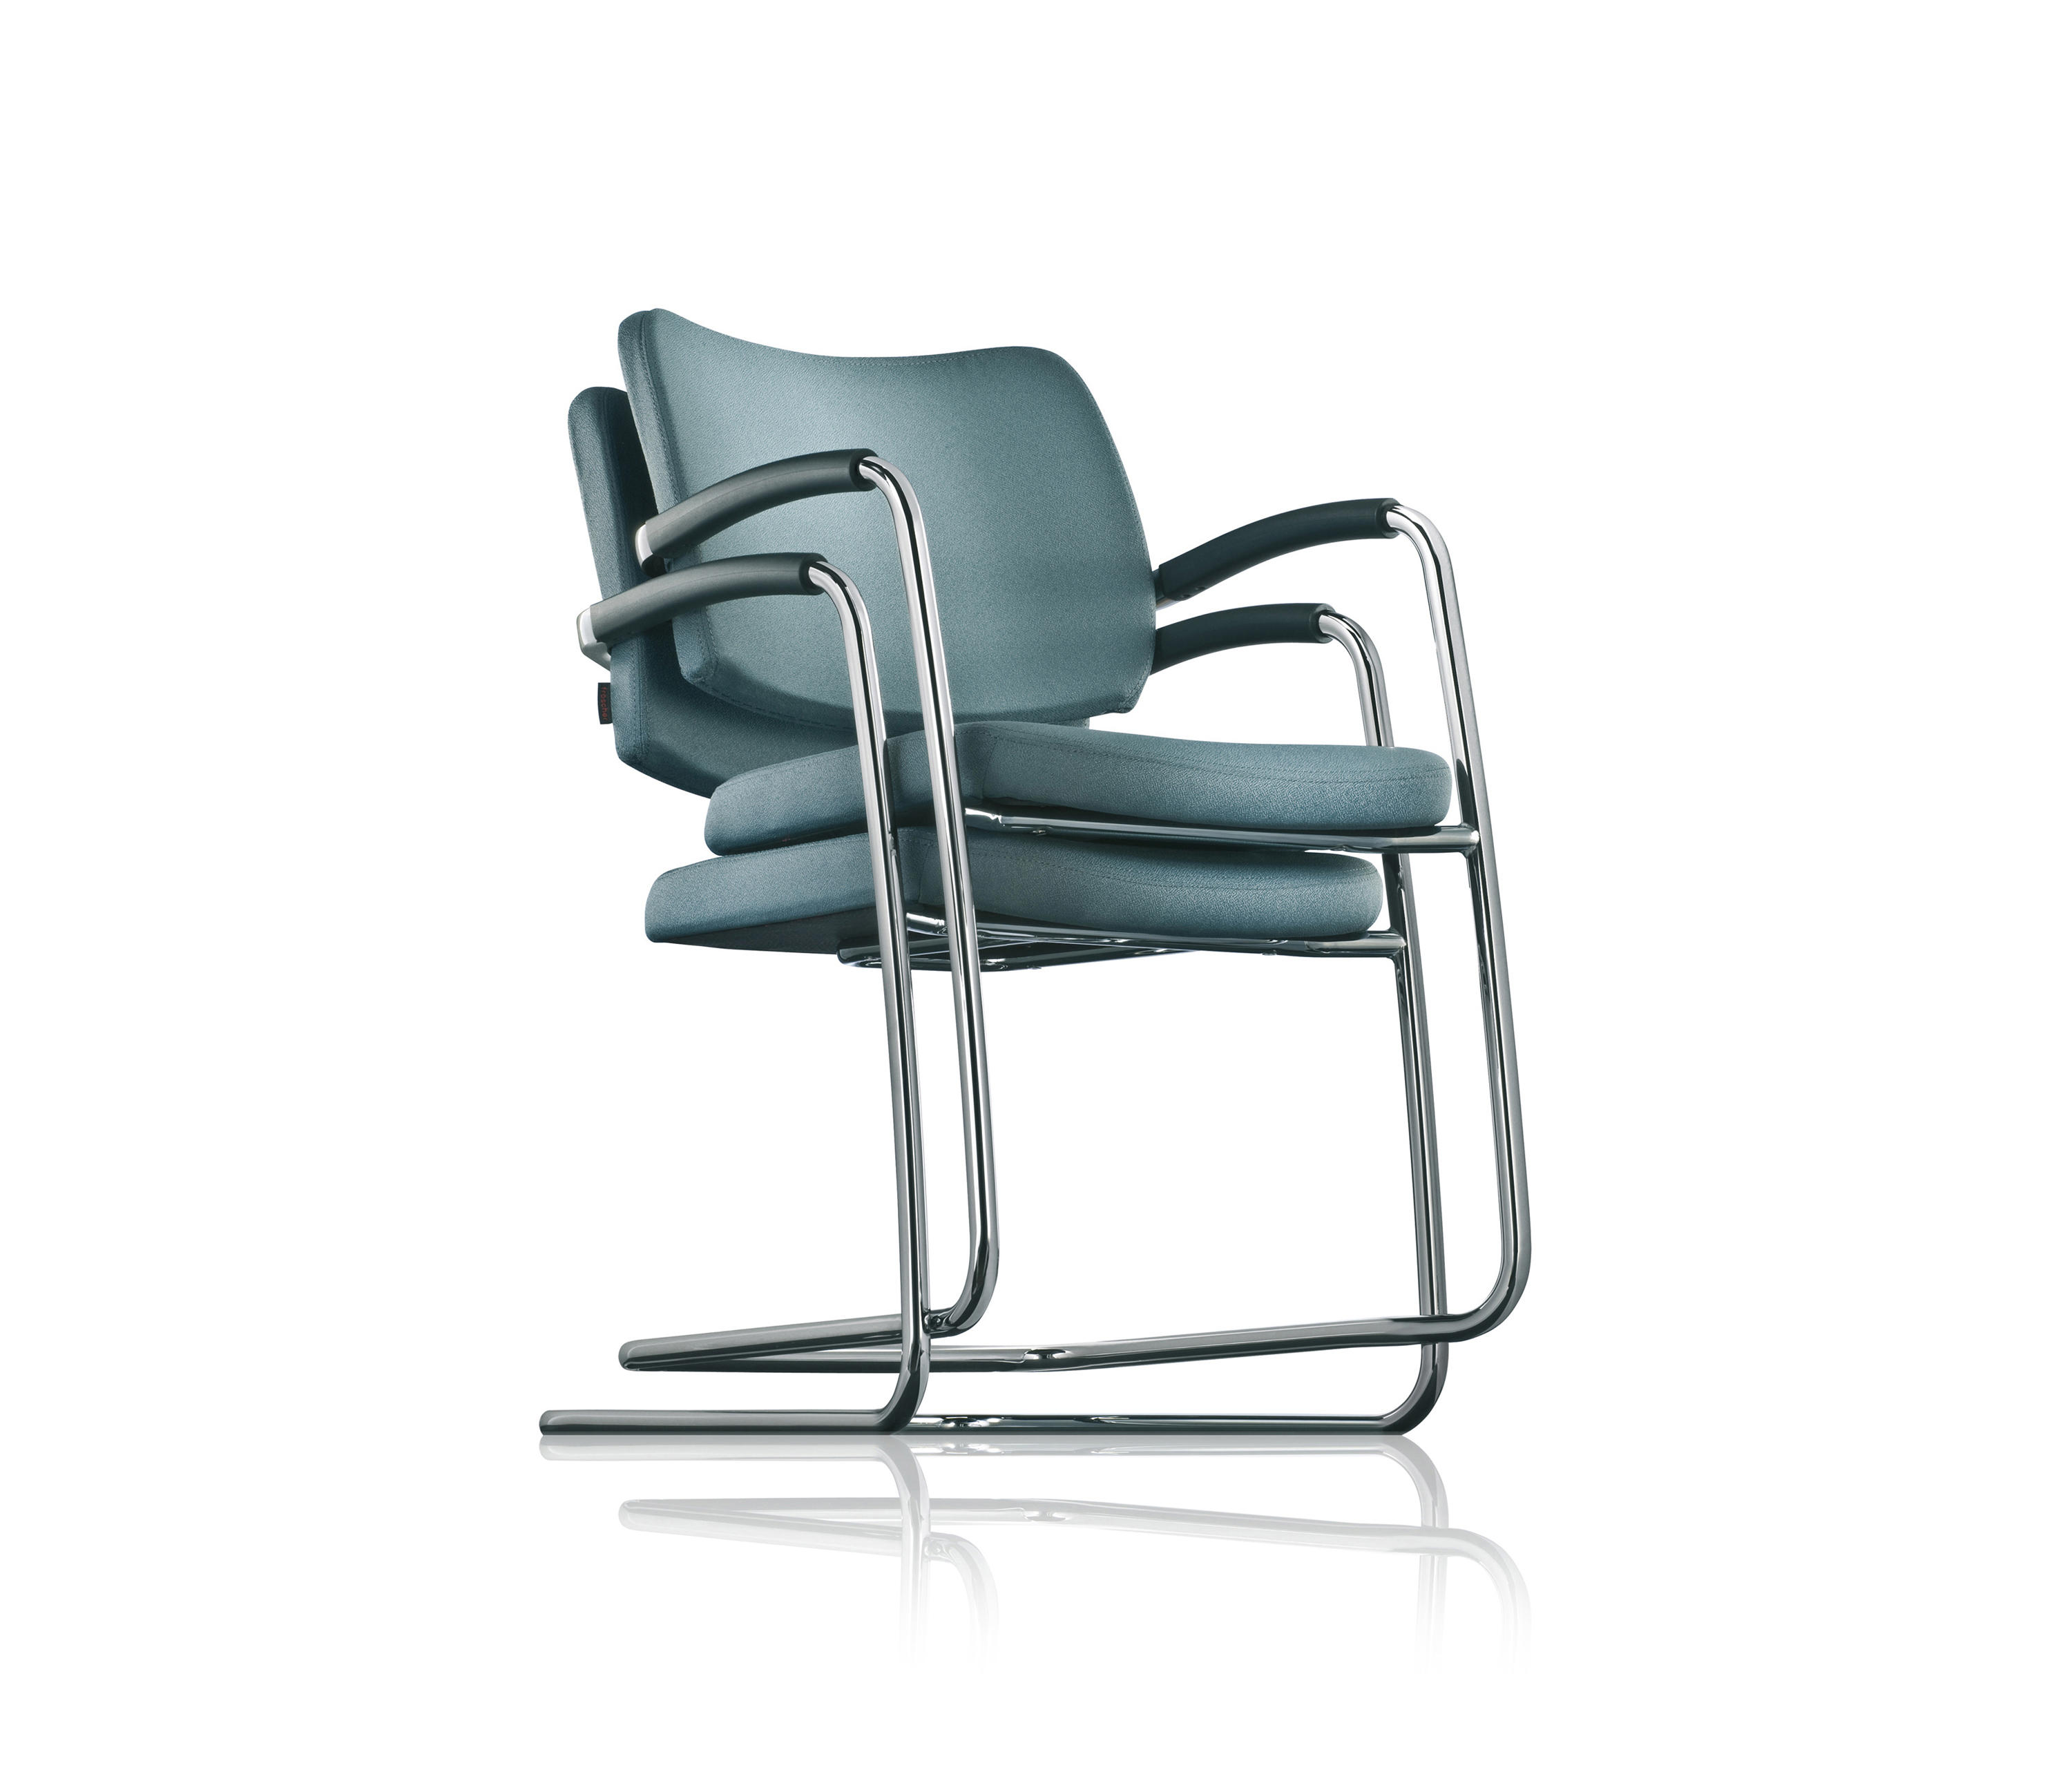 Sona Cantilever Chair Chairs From Fr 246 Scher Architonic